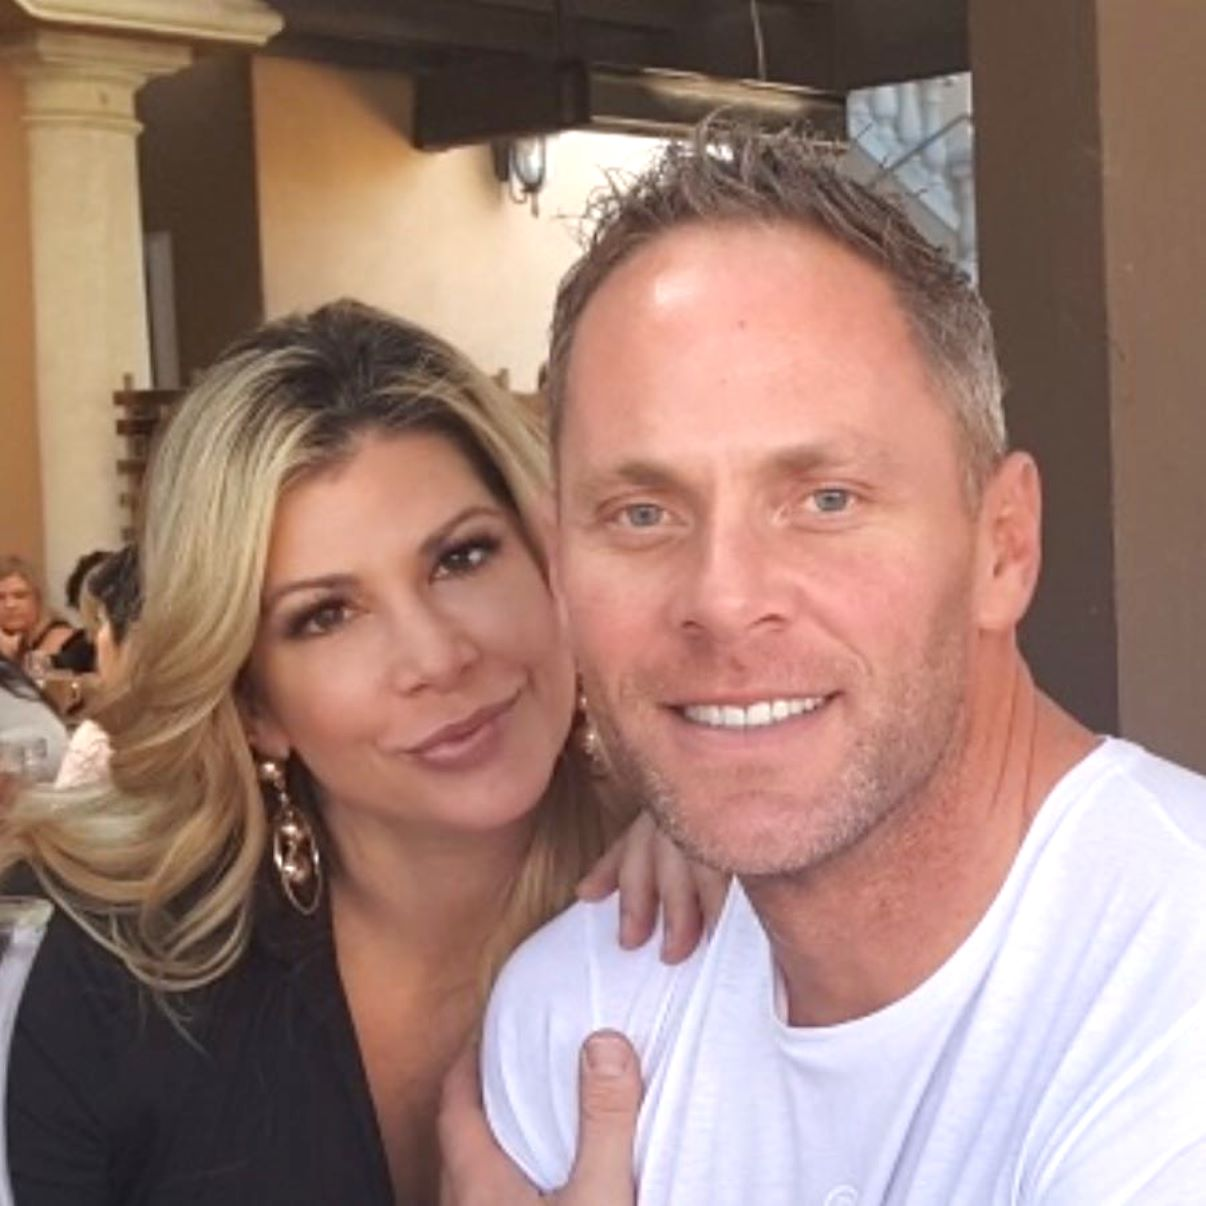 Wife of Alexis Bellino's Boyfriend Andy Bohn Implies Alexis Interfered with Attempts to Fix Marriage